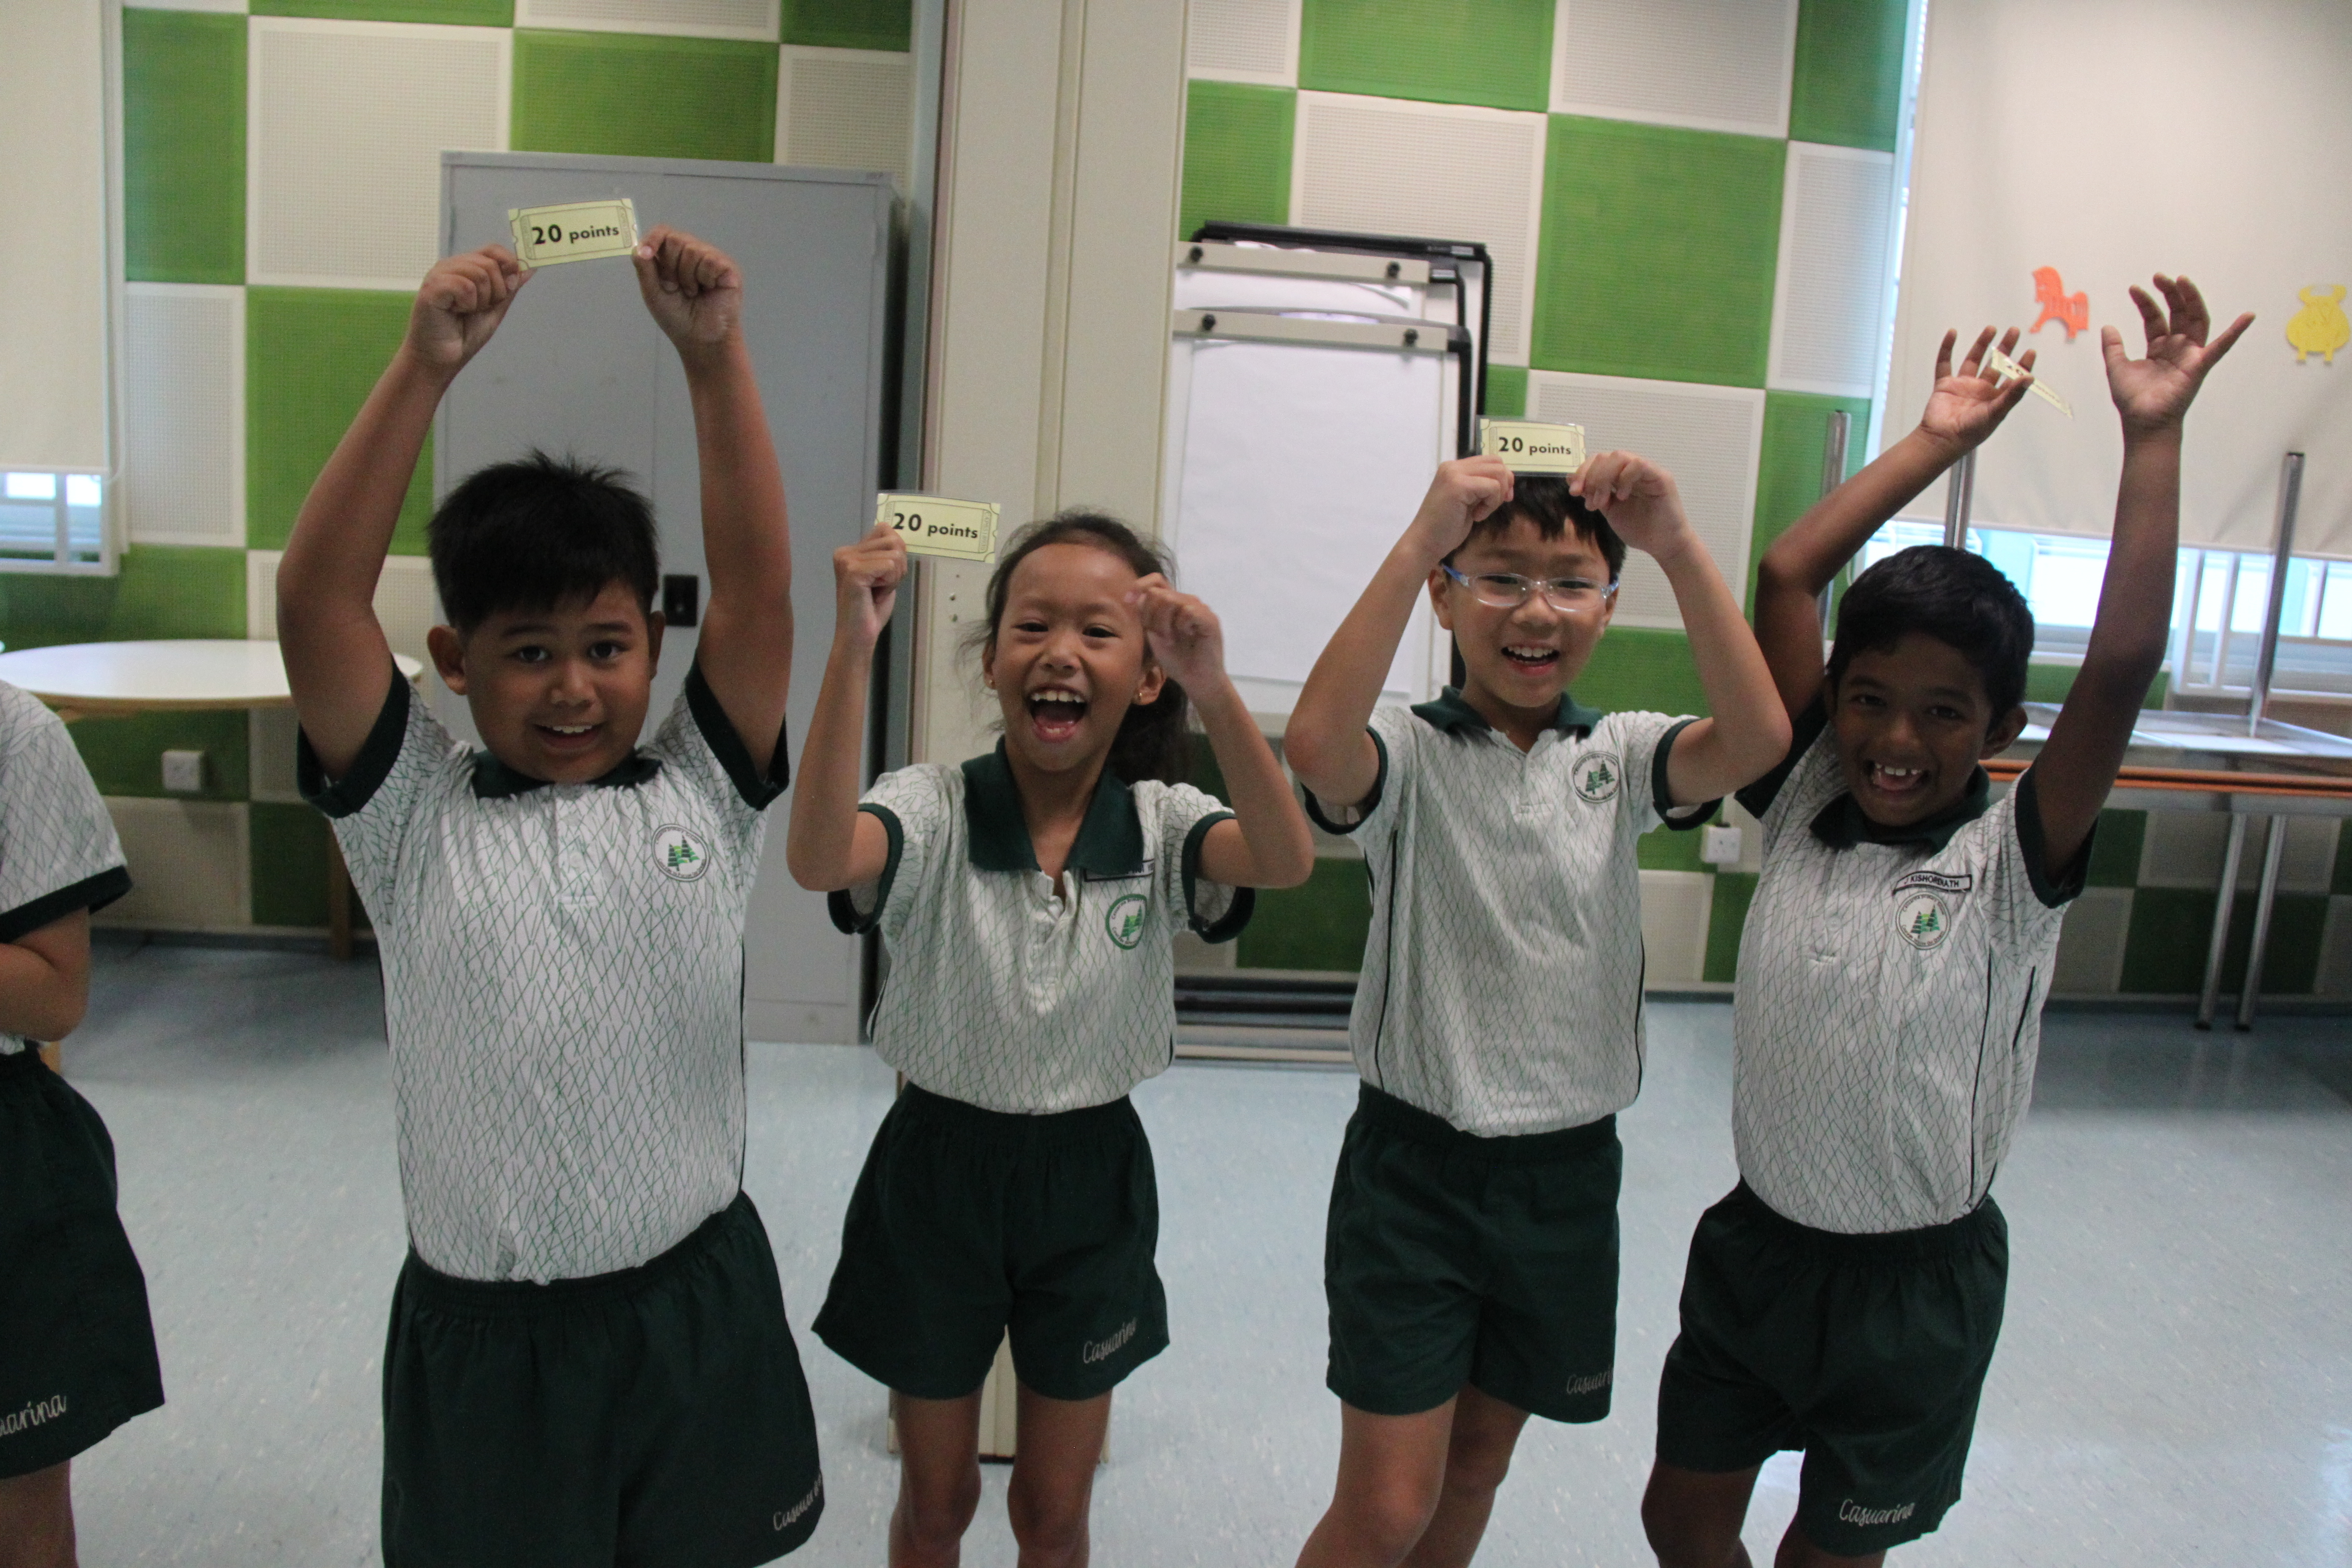 Maths@play P4 casuarina student primary school games